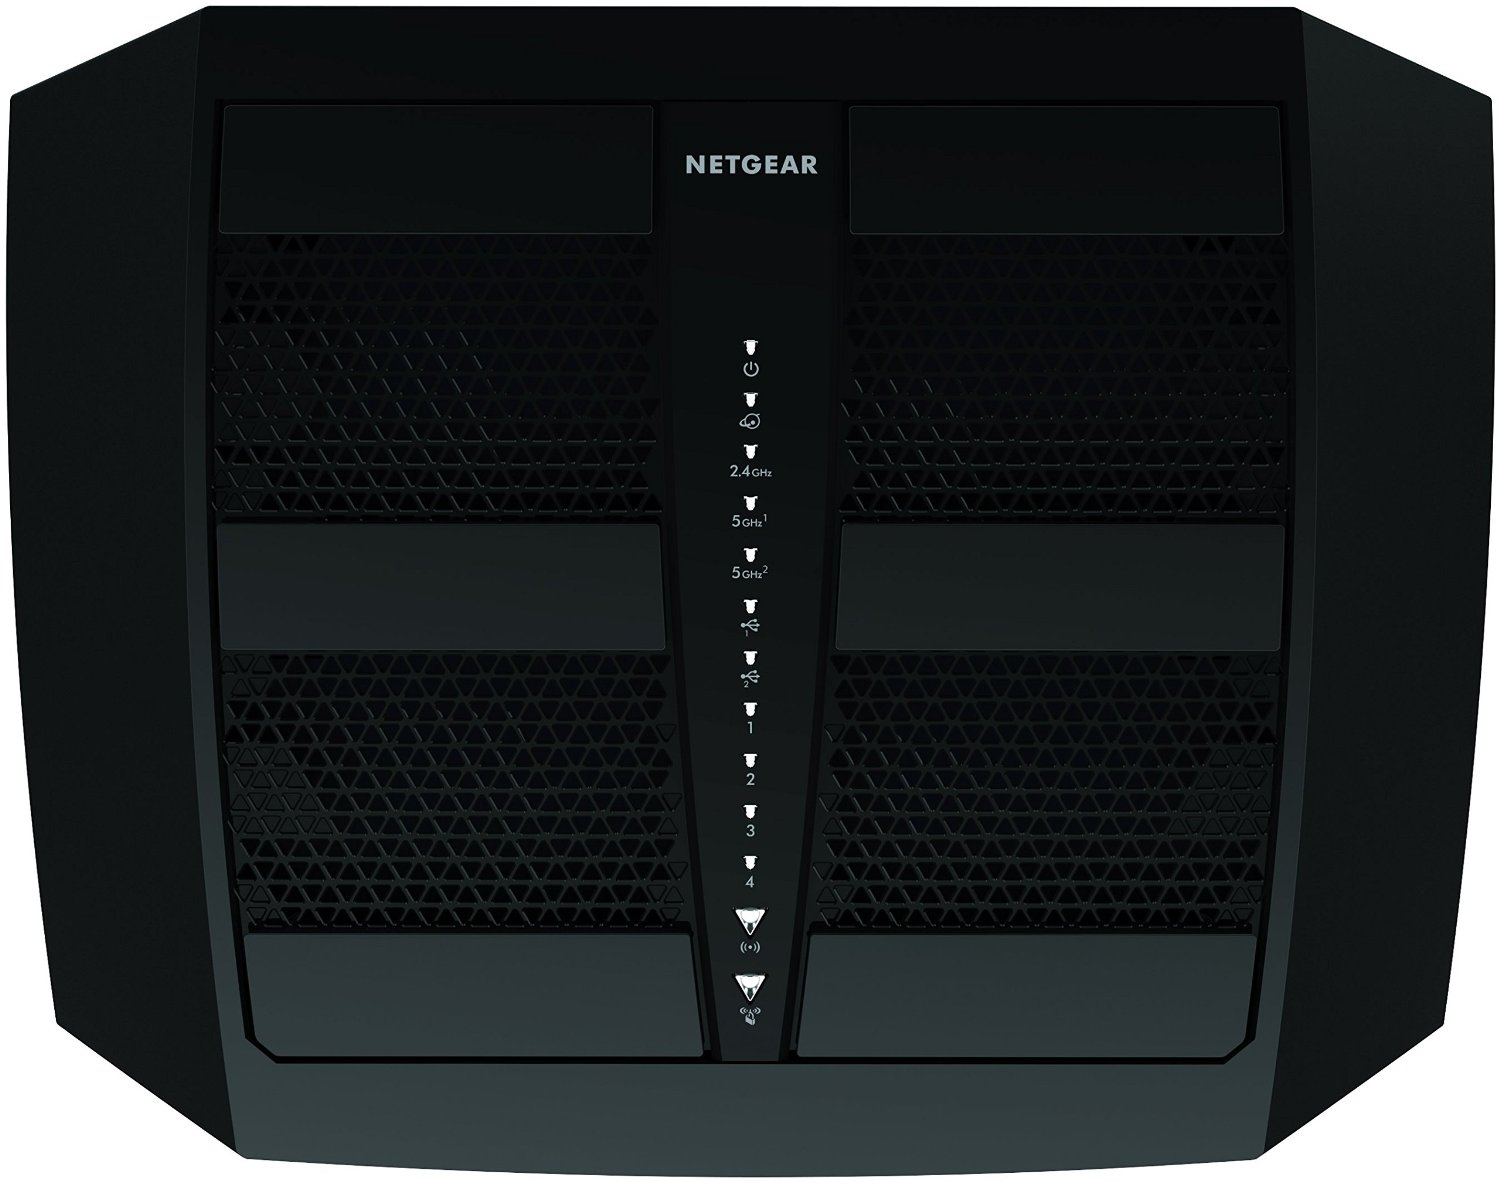 NETGEAR Rolls Out Firmware 1.0.2.46 for Its R8000 Router - Update Now